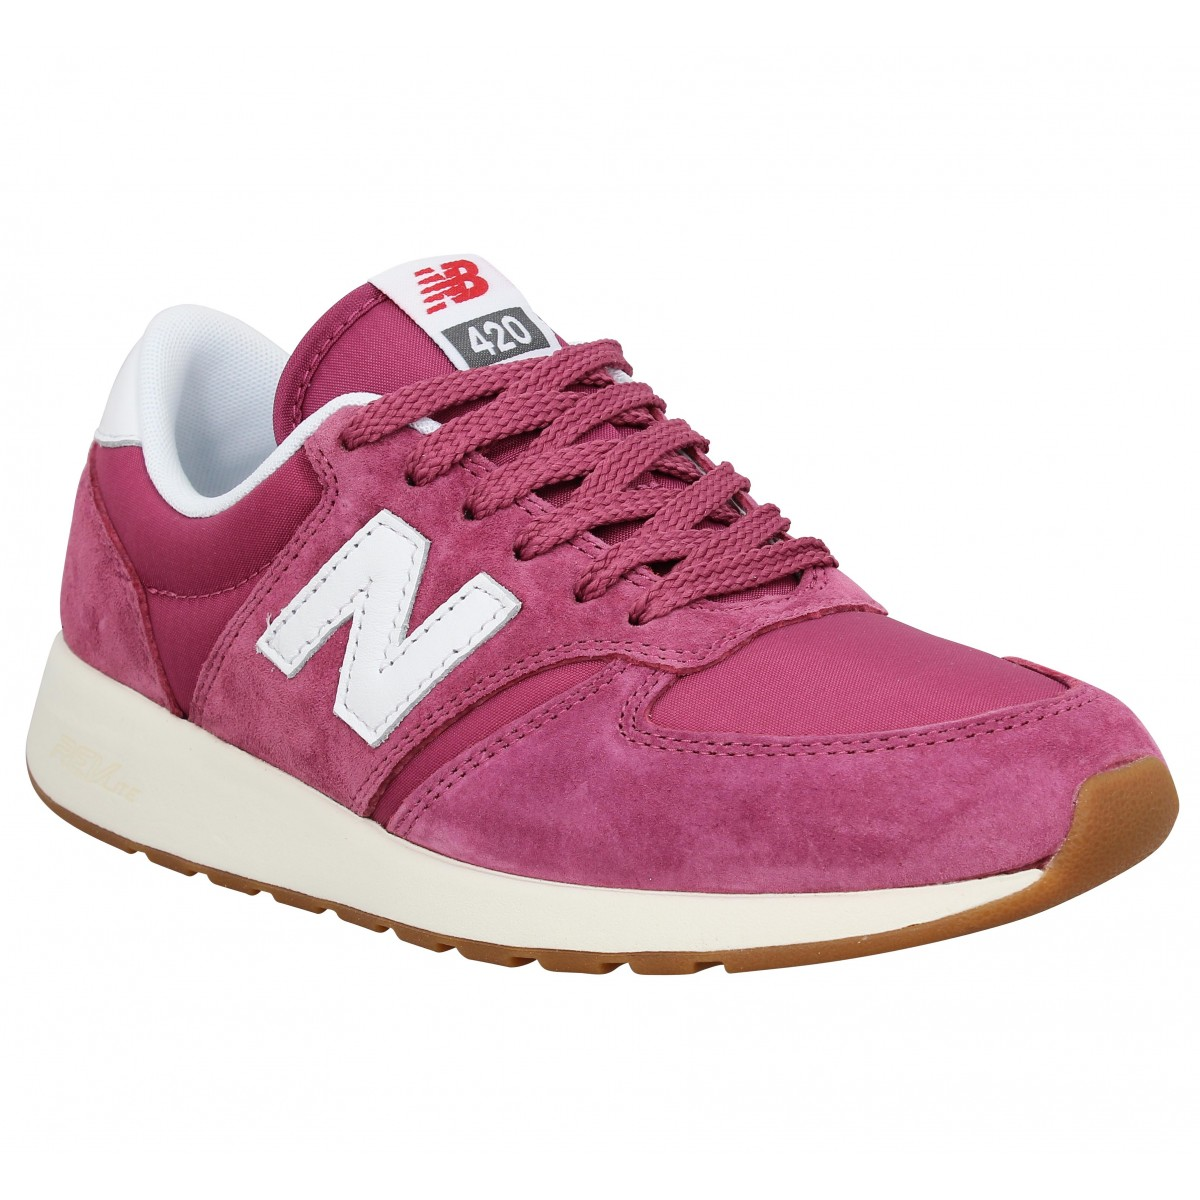 New Balance Marque Wrl 420 Velours Toile...